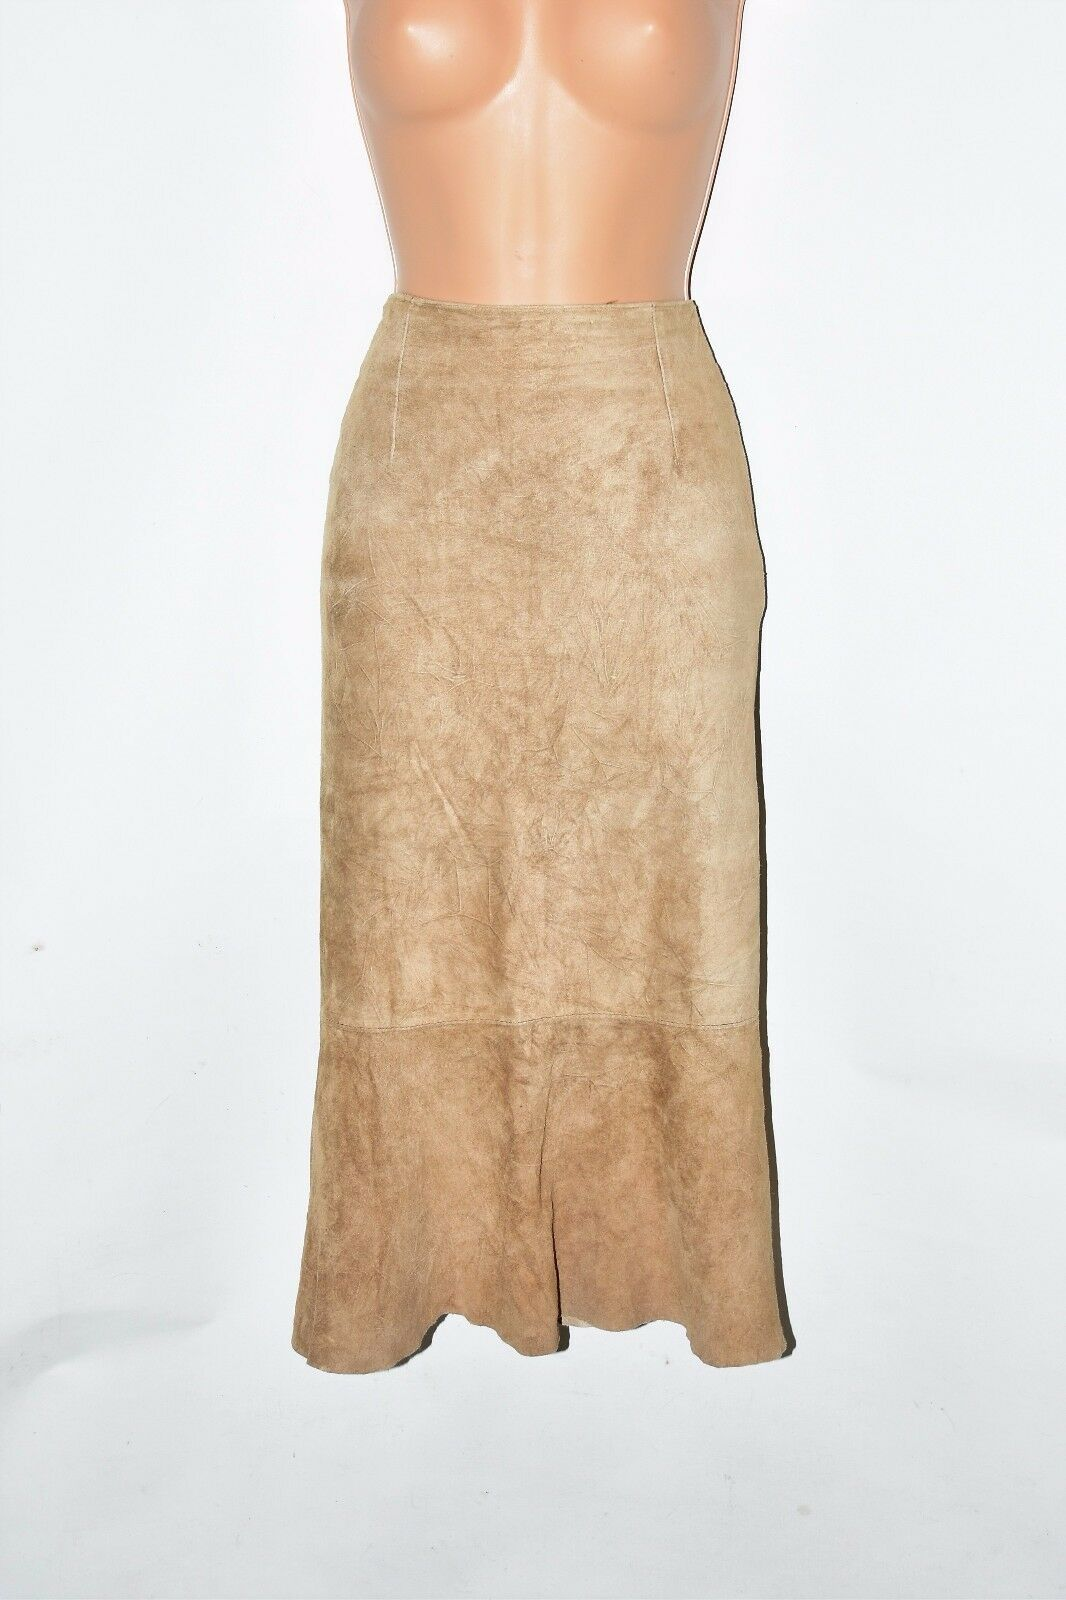 Vintage Brown Real Leather ARMA Calf Length Women's Skirt Size UK10 L29